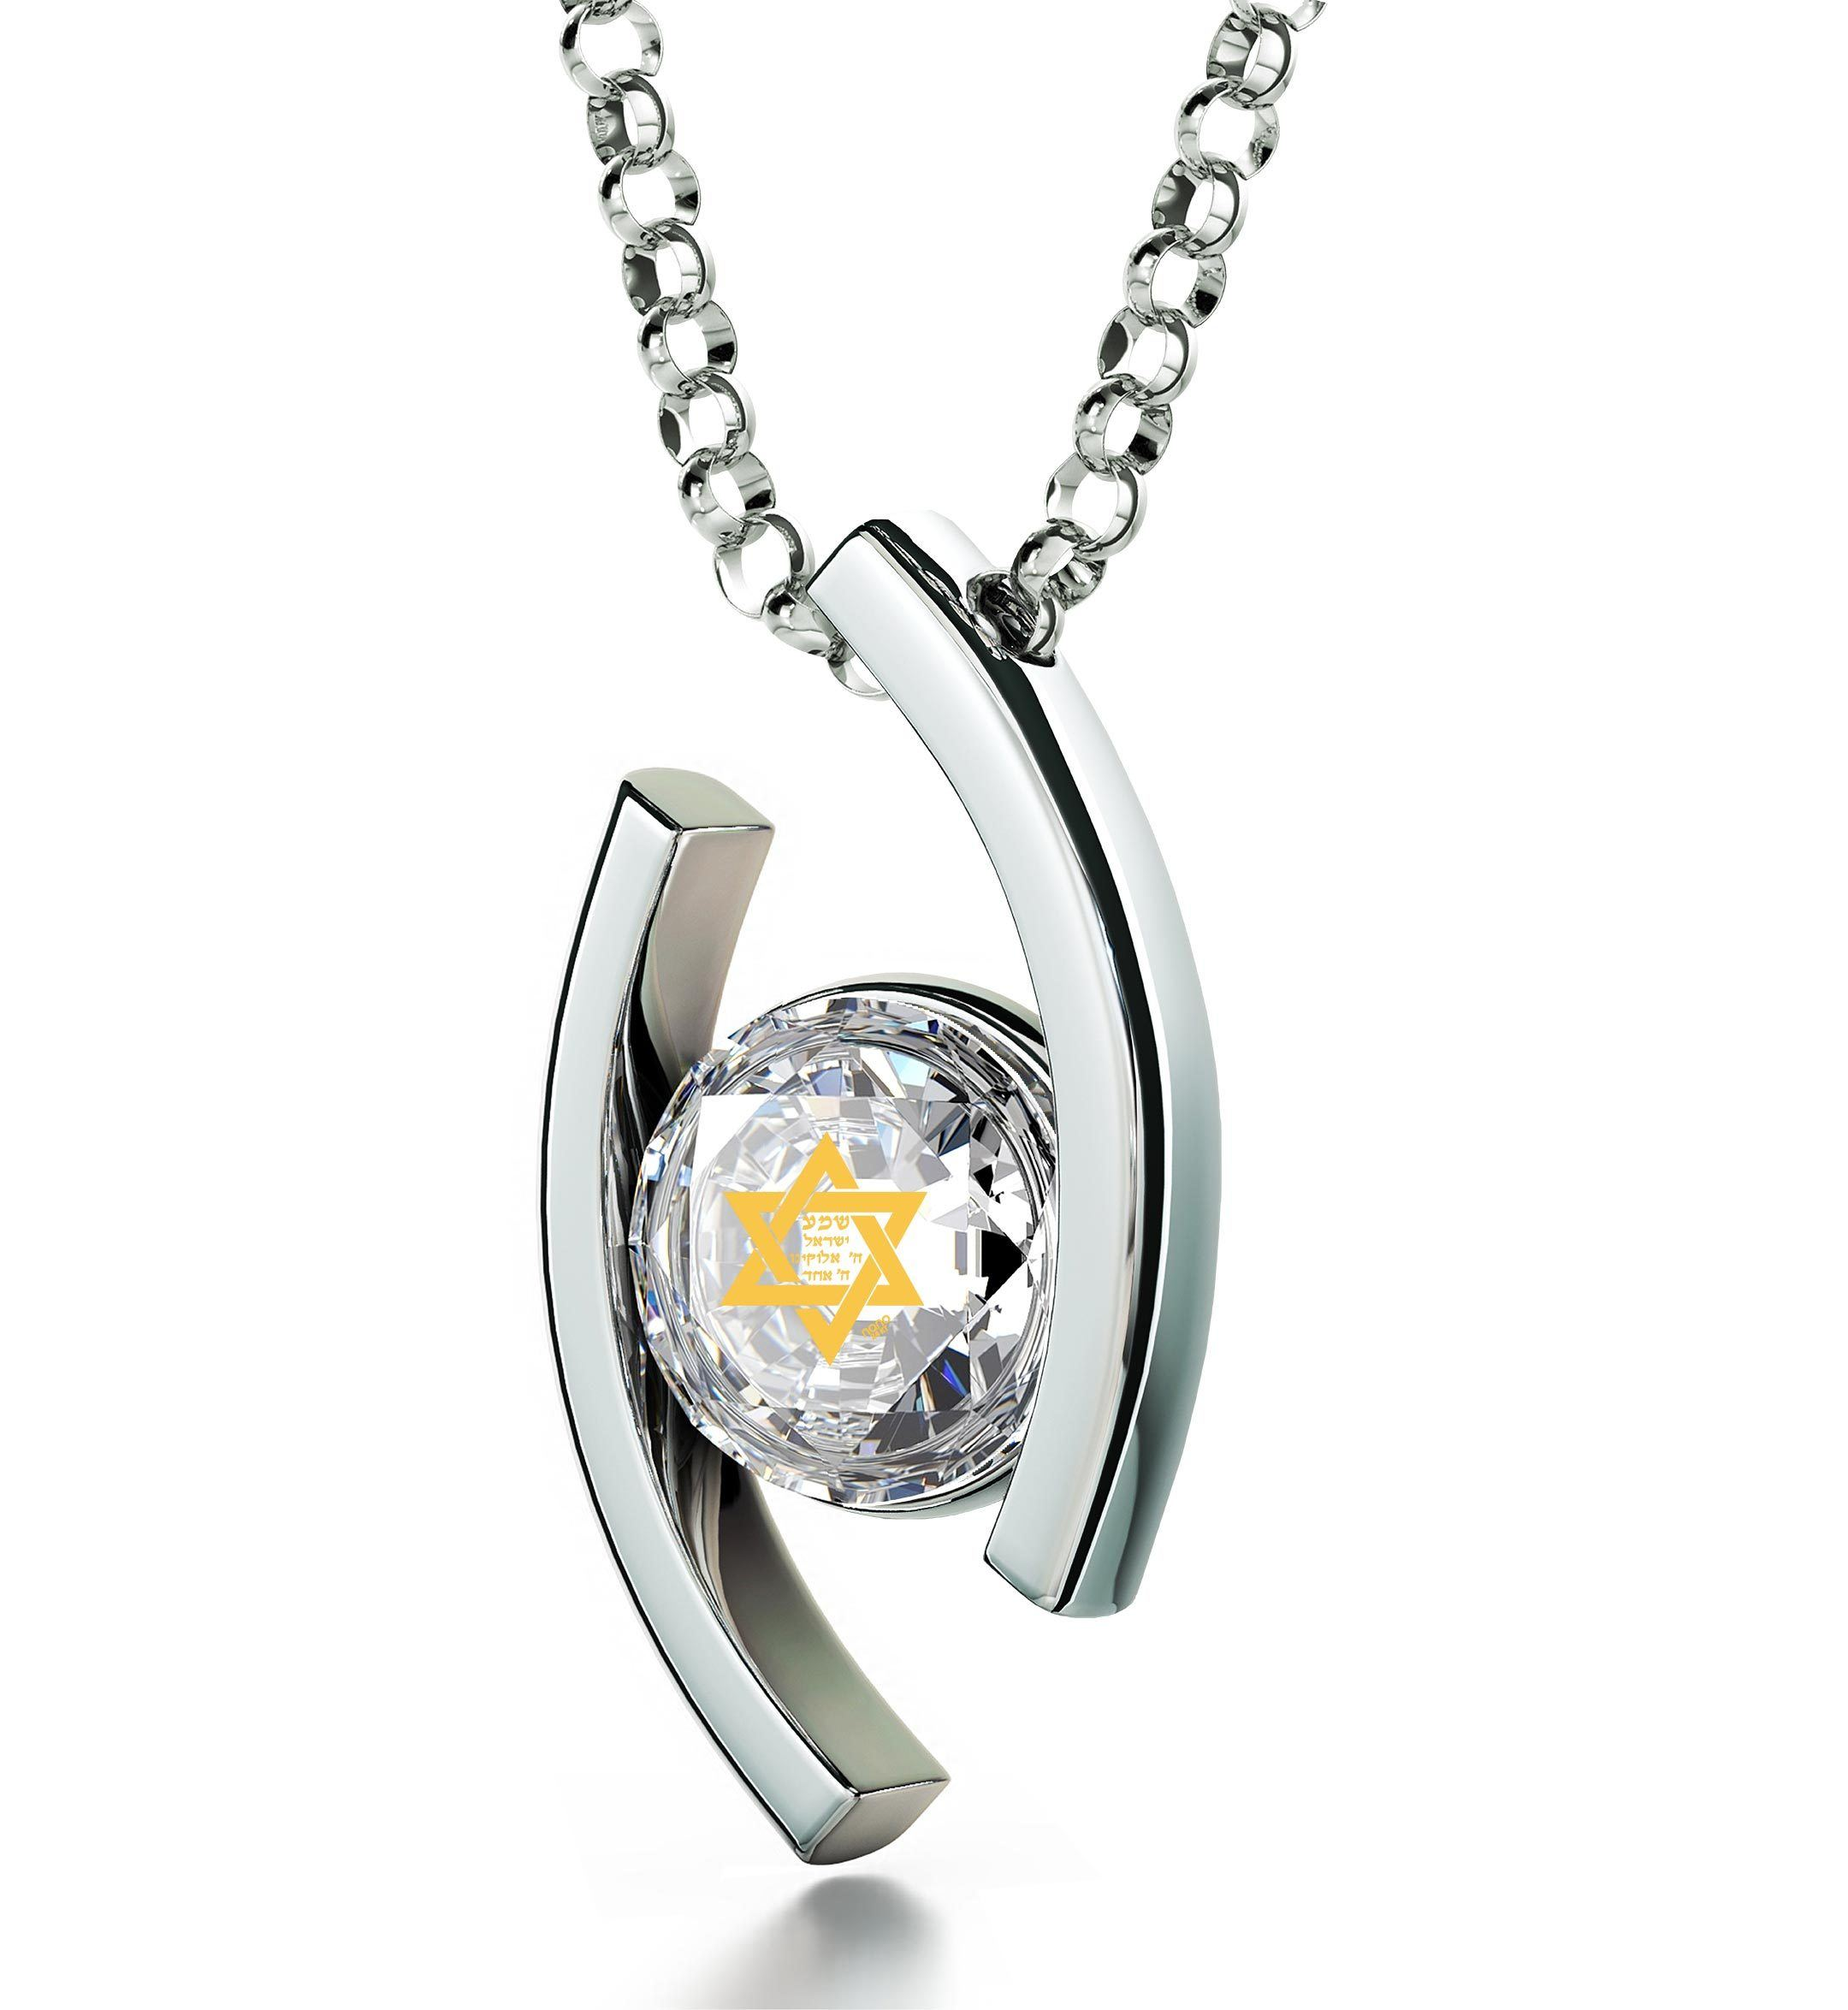 """Shema Yisrael"" Engraved in 24k, Israeli Jewelry with Swarovski Crystal Pendant, Judaica Gifts, Floating Necklace"